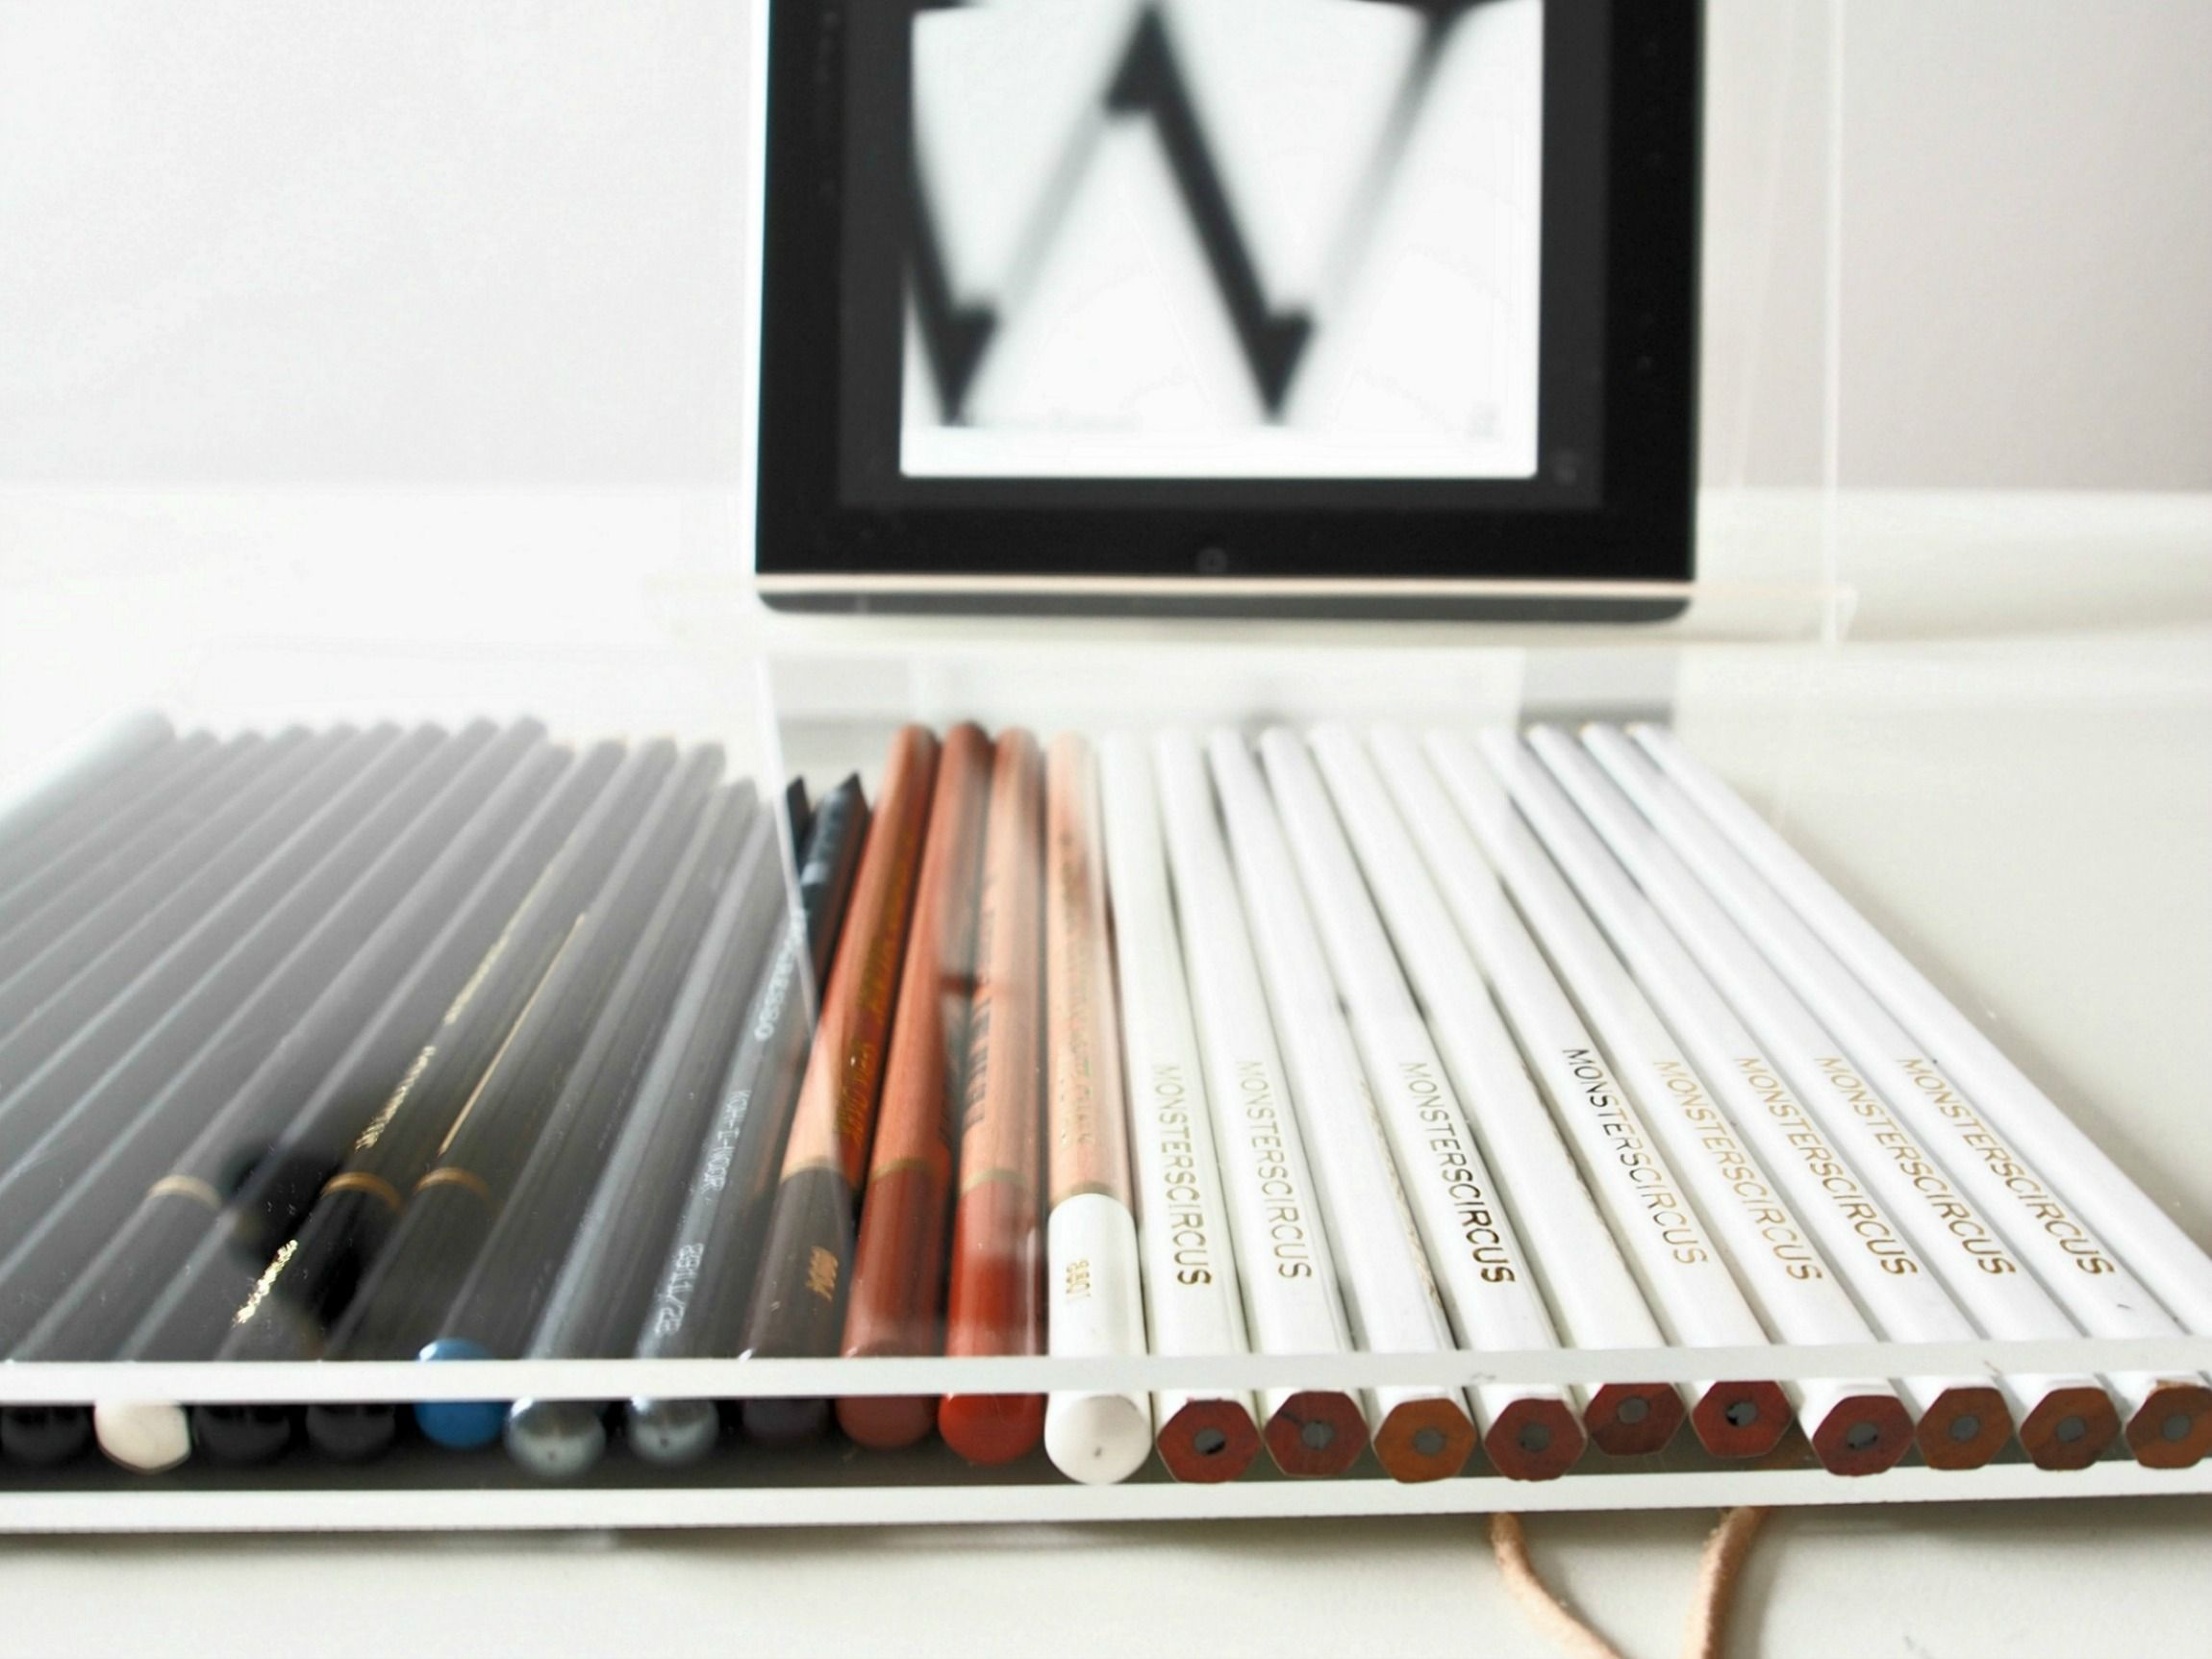 15 DIY Home Improvement Projects | Drawing tools, Olympus digital ...